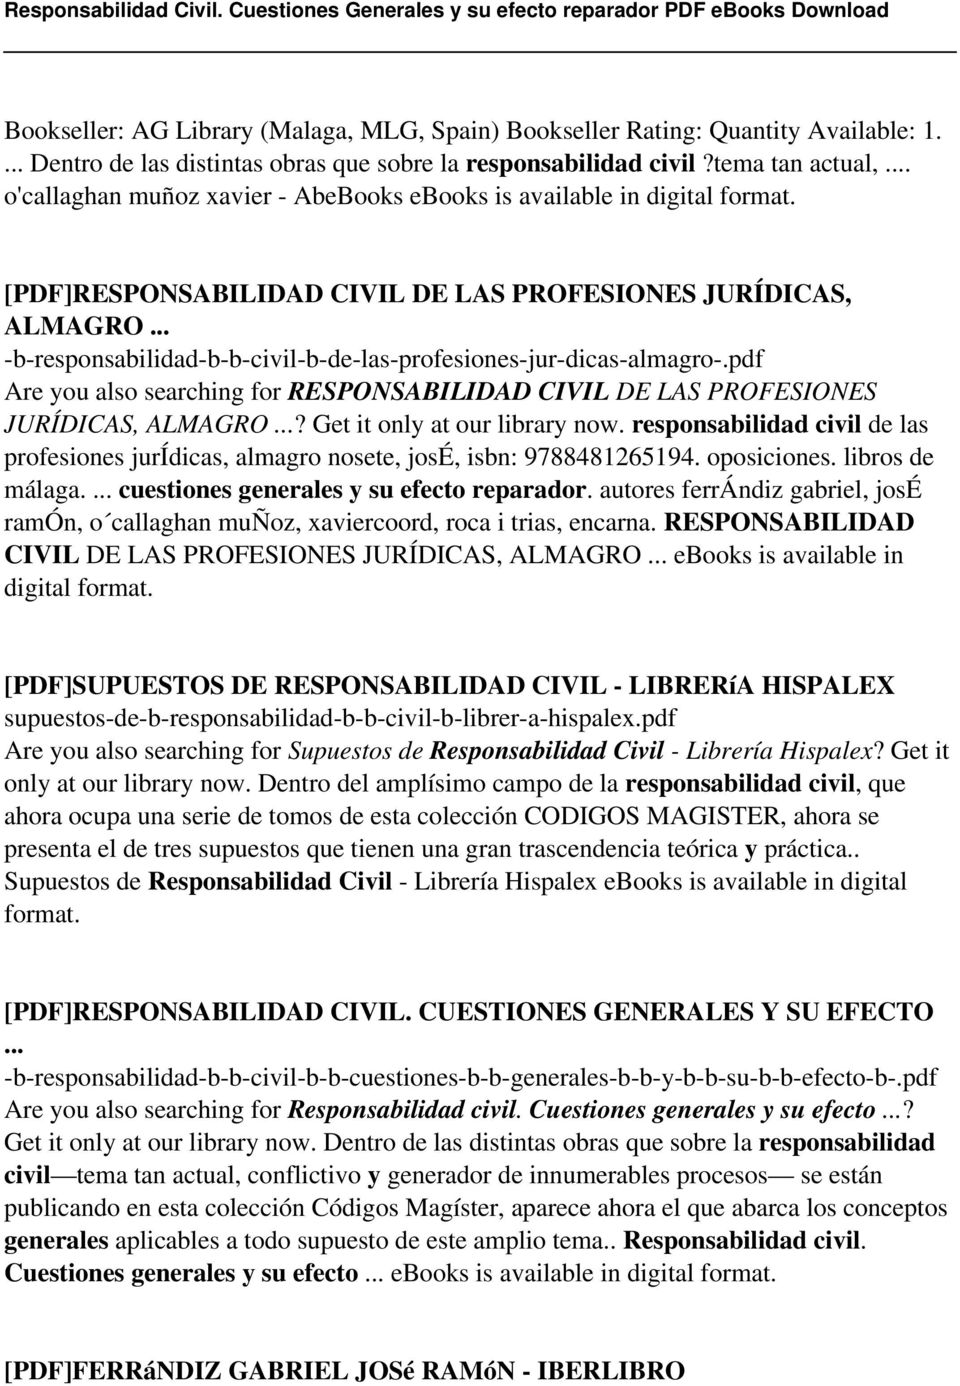 .. -b-responsabilidad-b-b-civil-b-de-las-profesiones-jur-dicas-almagro-.pdf Are you also searching for RESPONSABILIDAD CIVIL DE LAS PROFESIONES JURÍDICAS, ALMAGRO...? Get it only at our library now.